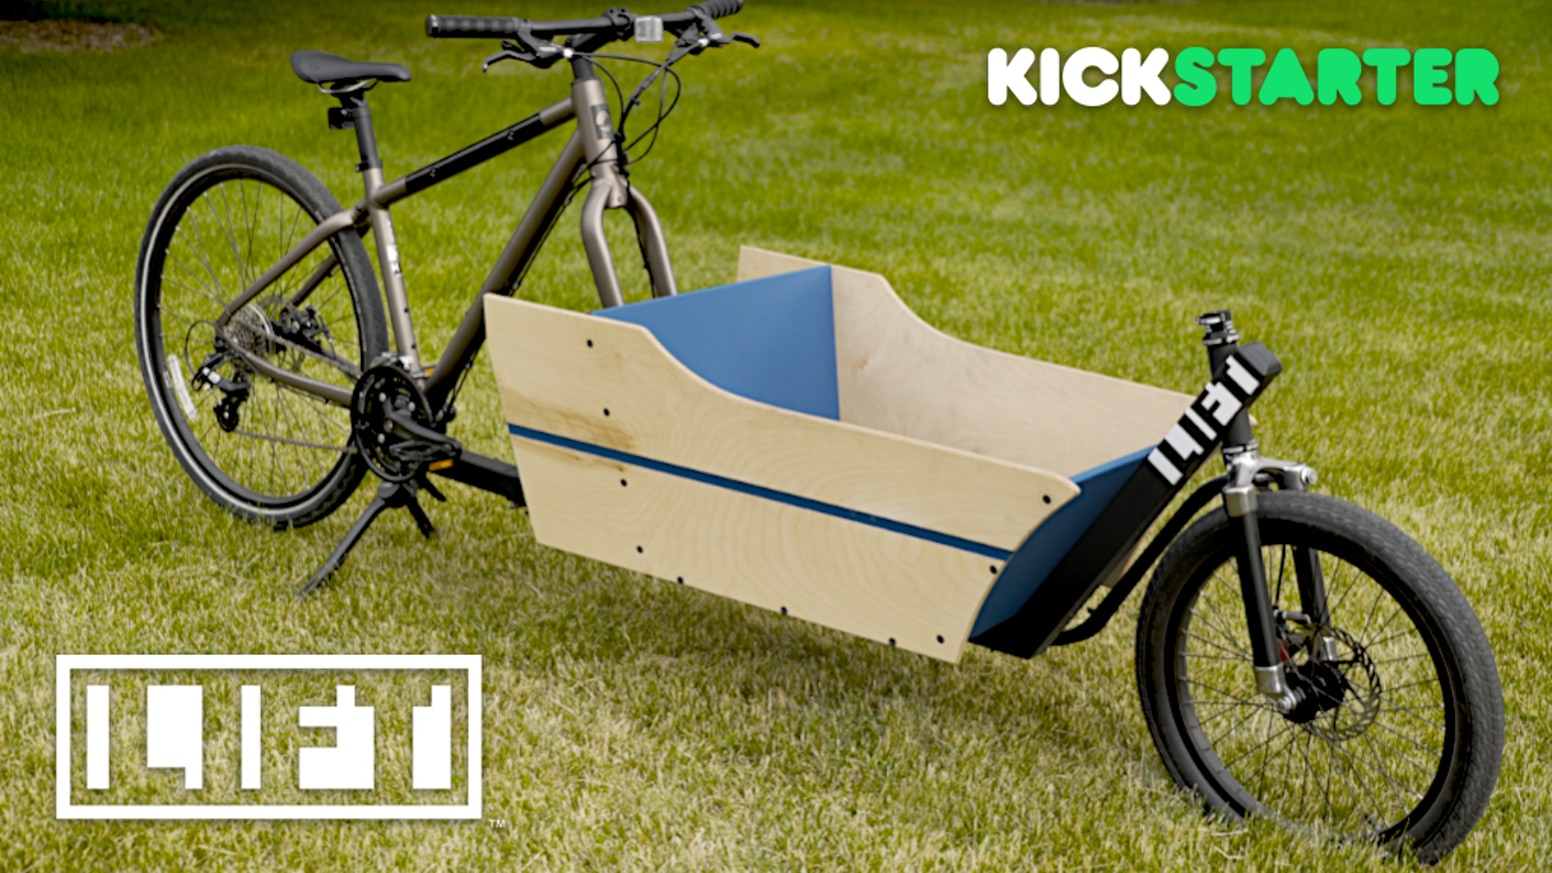 The LIFT turns YOUR bike into a Cargo Bike. And back again... Now your bicycle can do so much more.